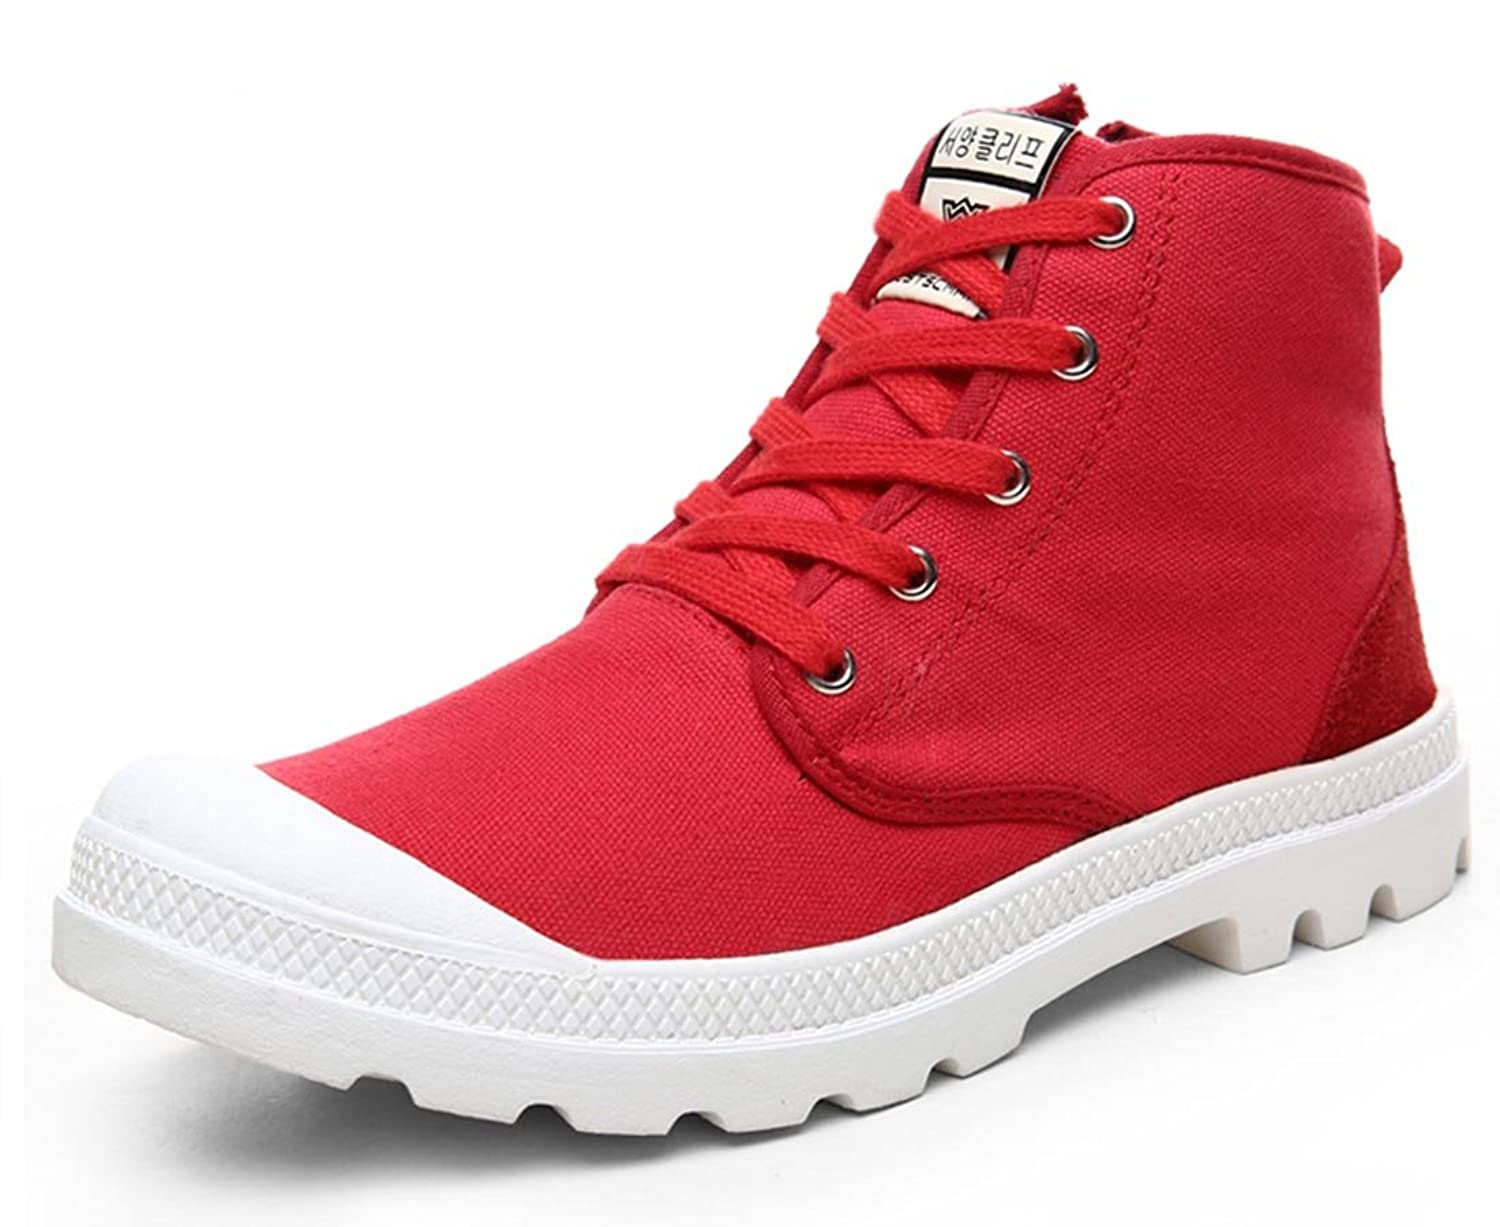 Ws West Scarp Men's Women's Classic Lace up High top Canvas Boot